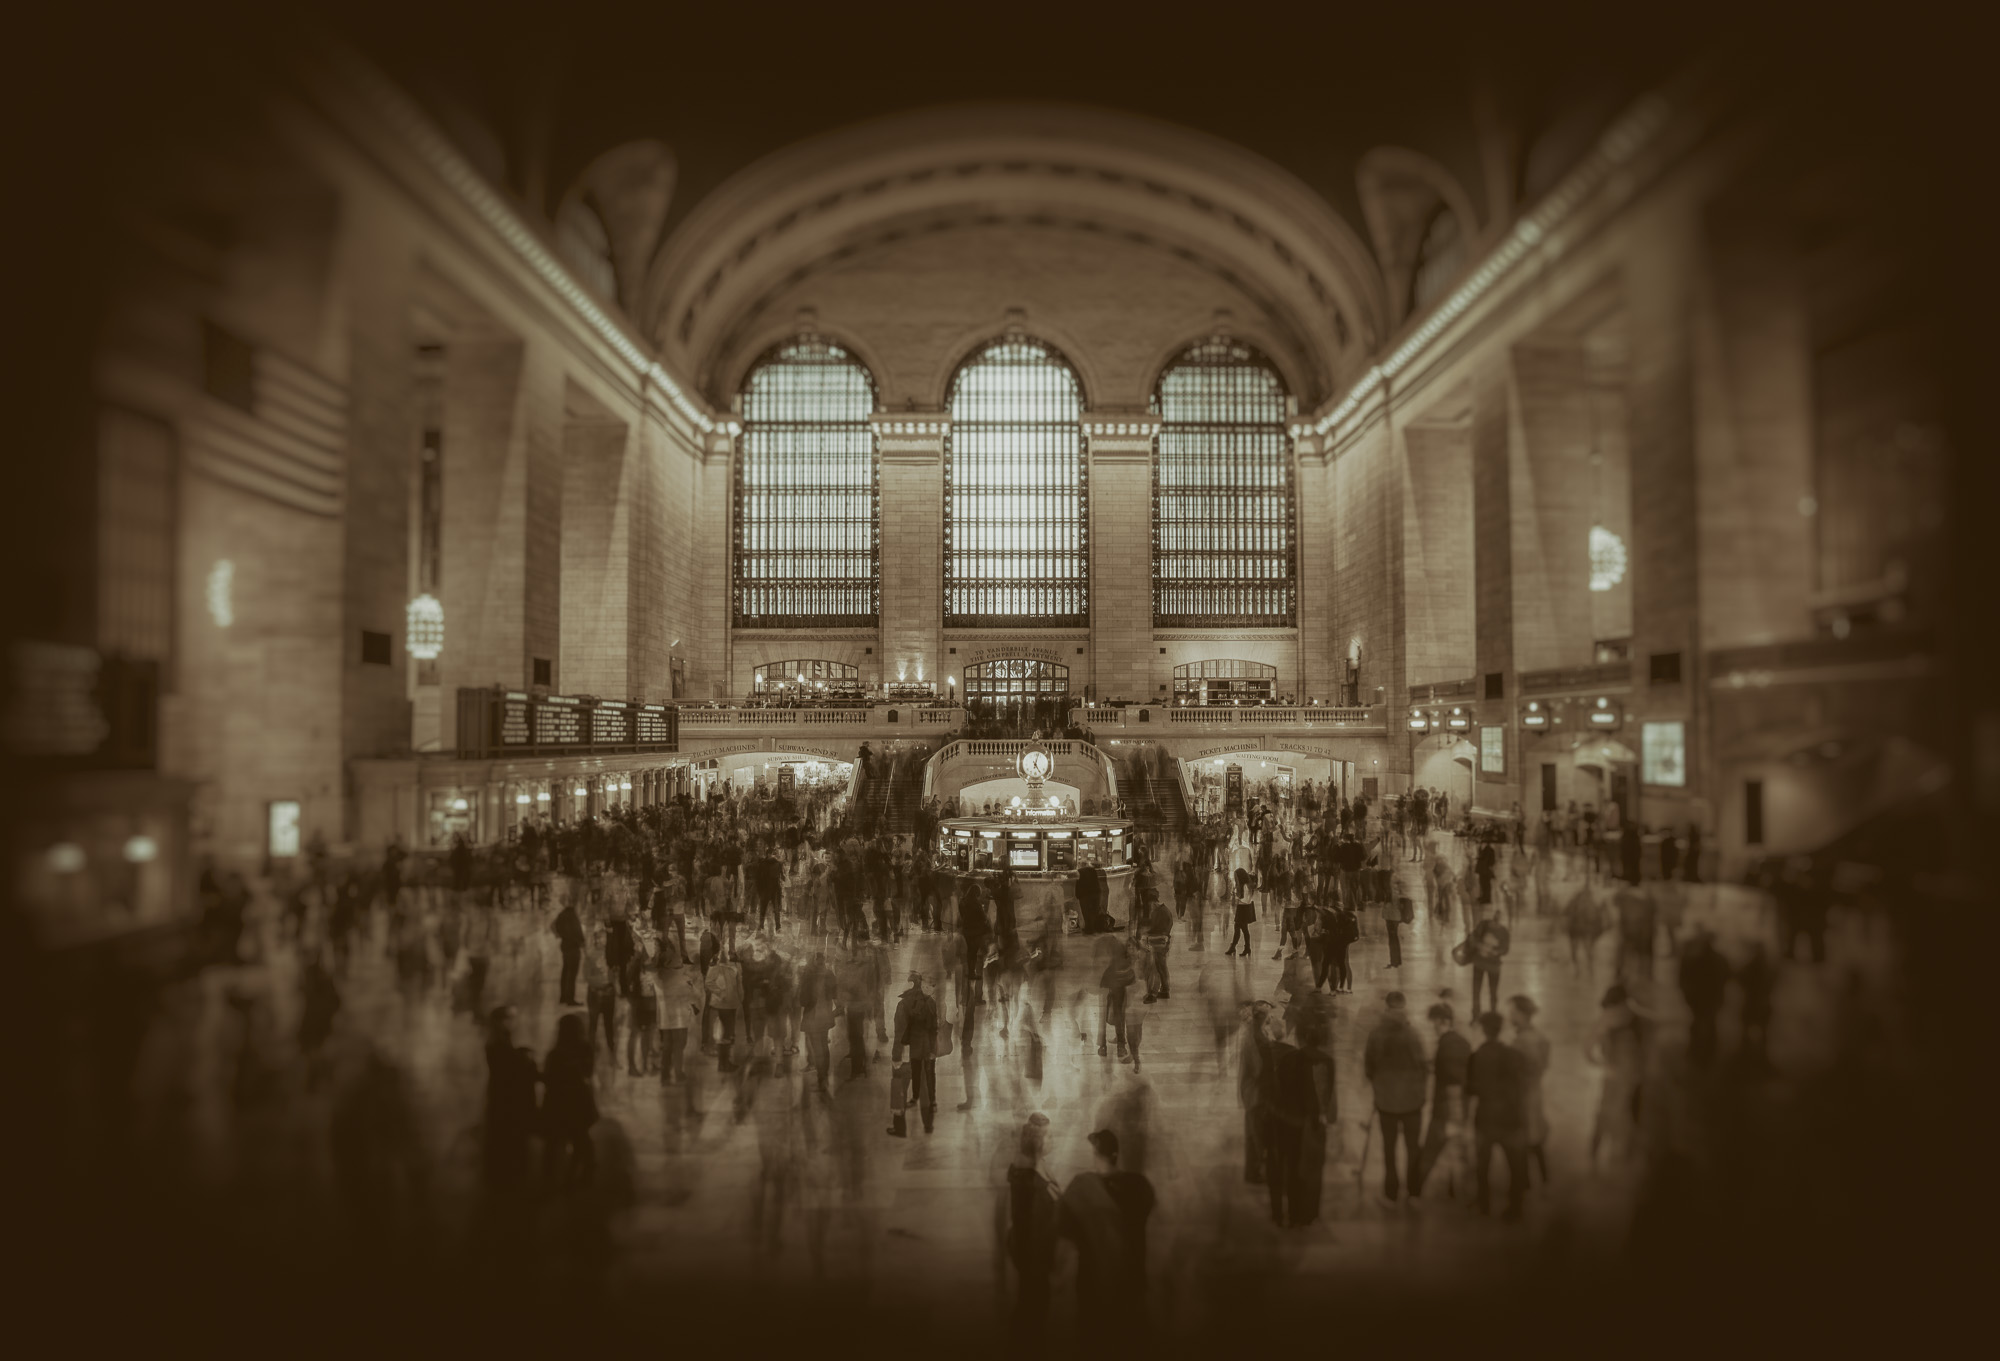 Rush hour in Grand Central Station in Monochrome